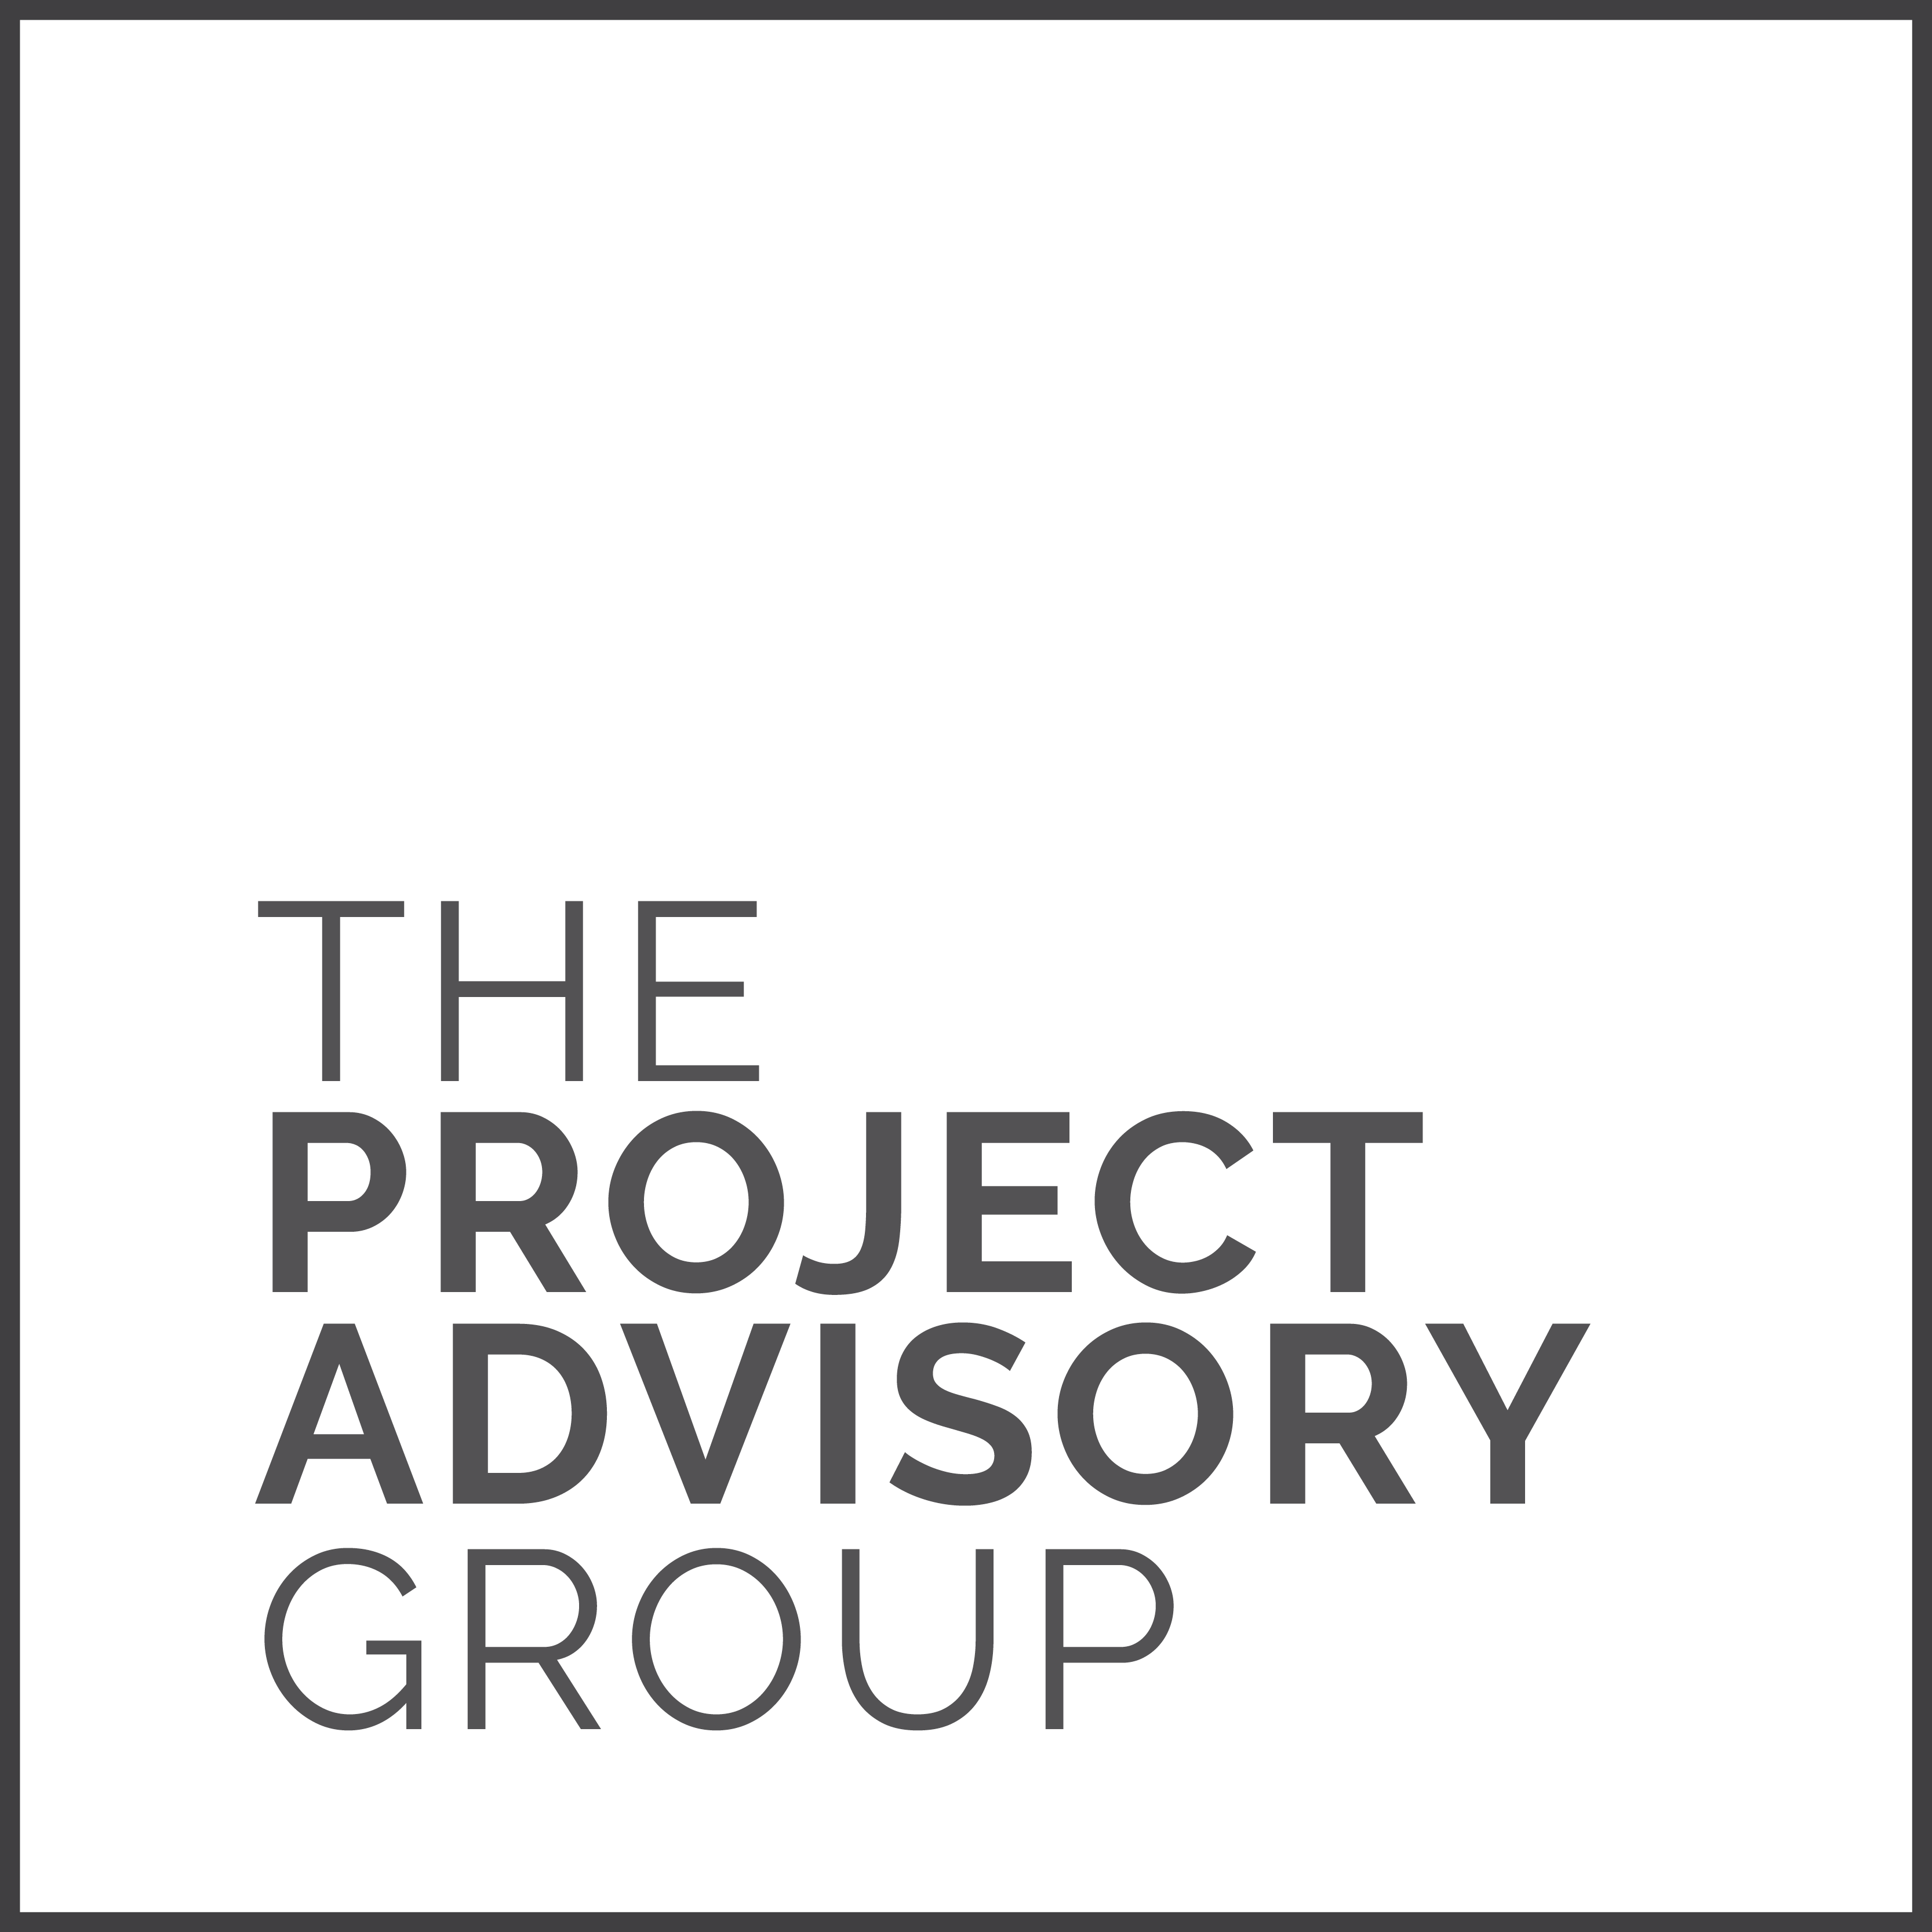 The Project Advisory Group